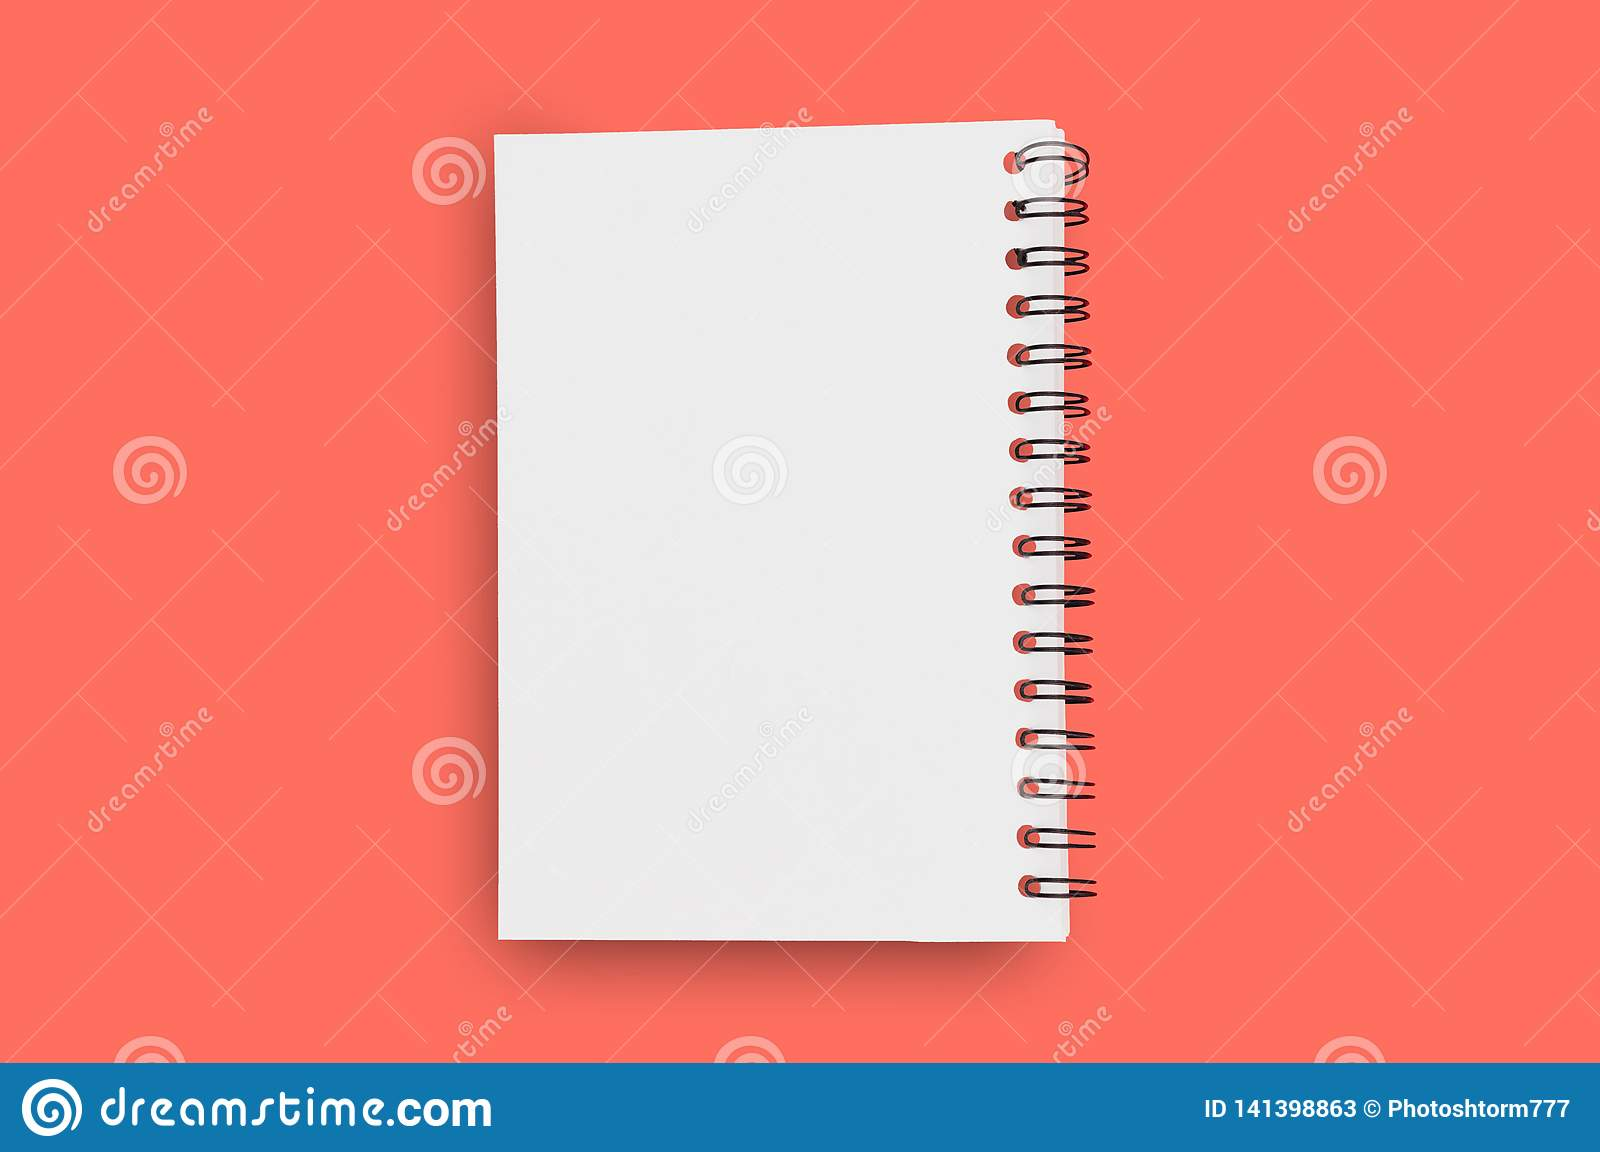 Blank paper notepad with spiral wire for note or drawing in center on background of living coral color. Copy space for your text